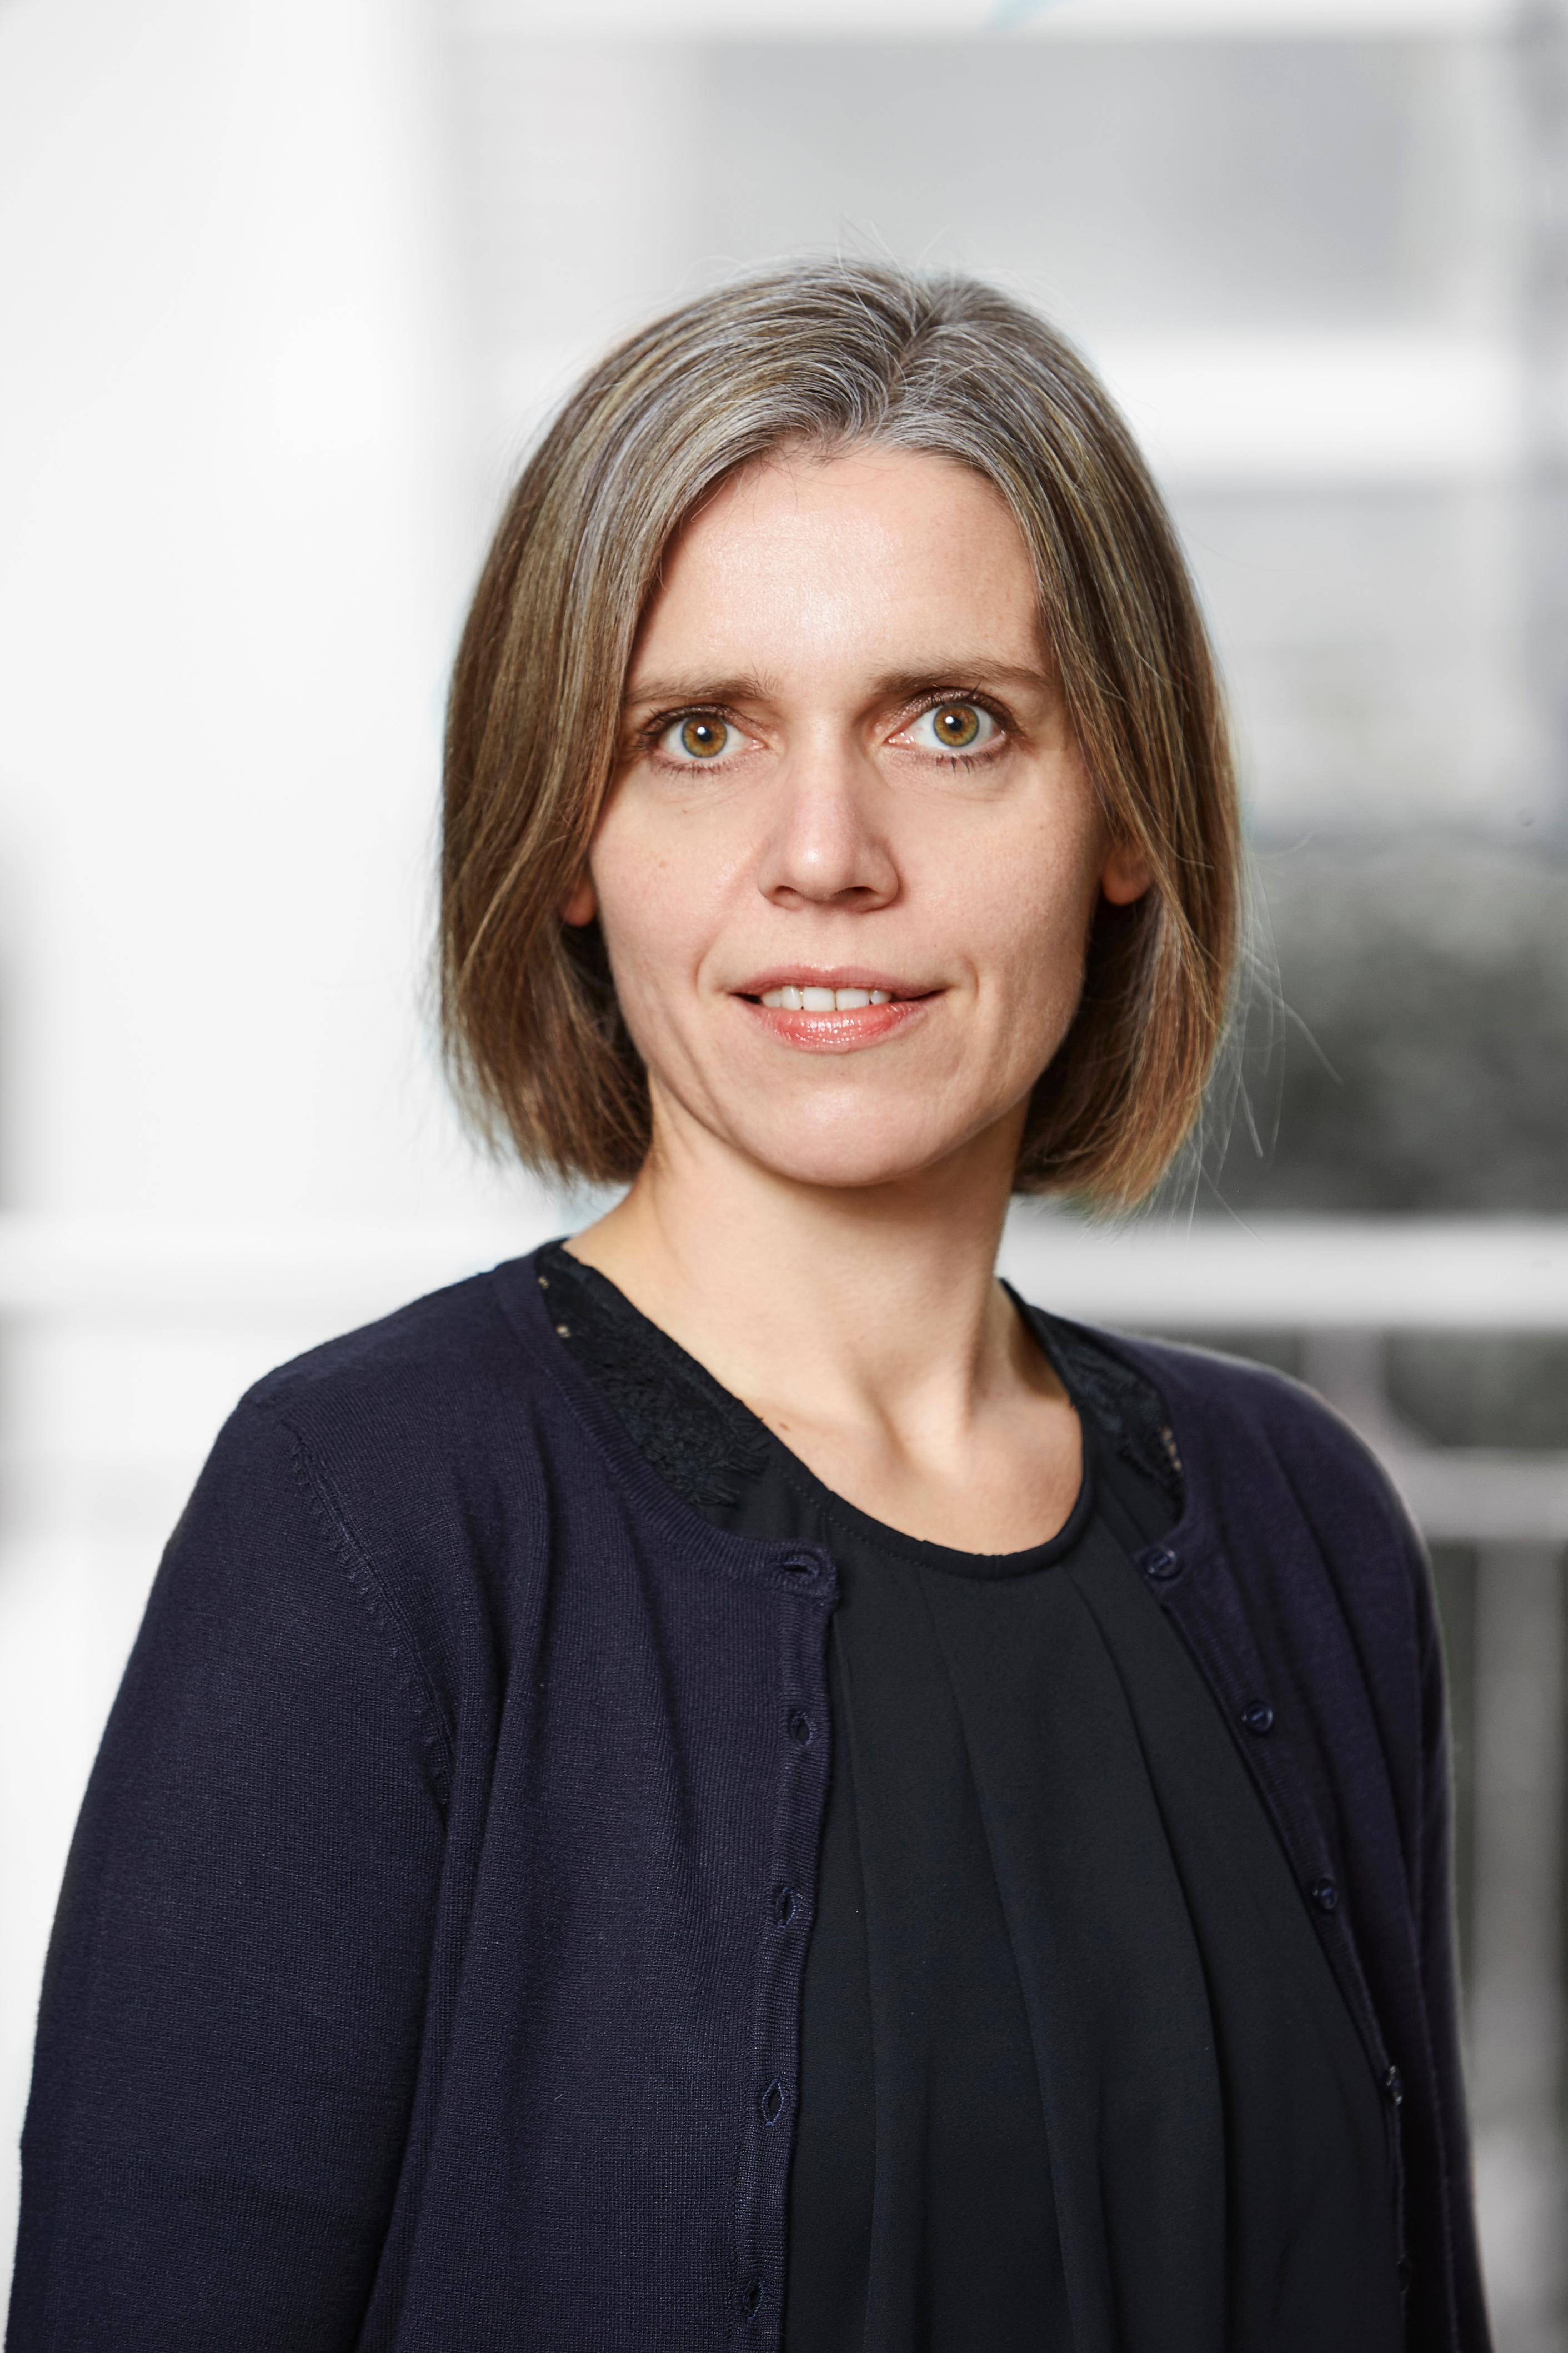 Photo of Anja Overgaard Thomassen